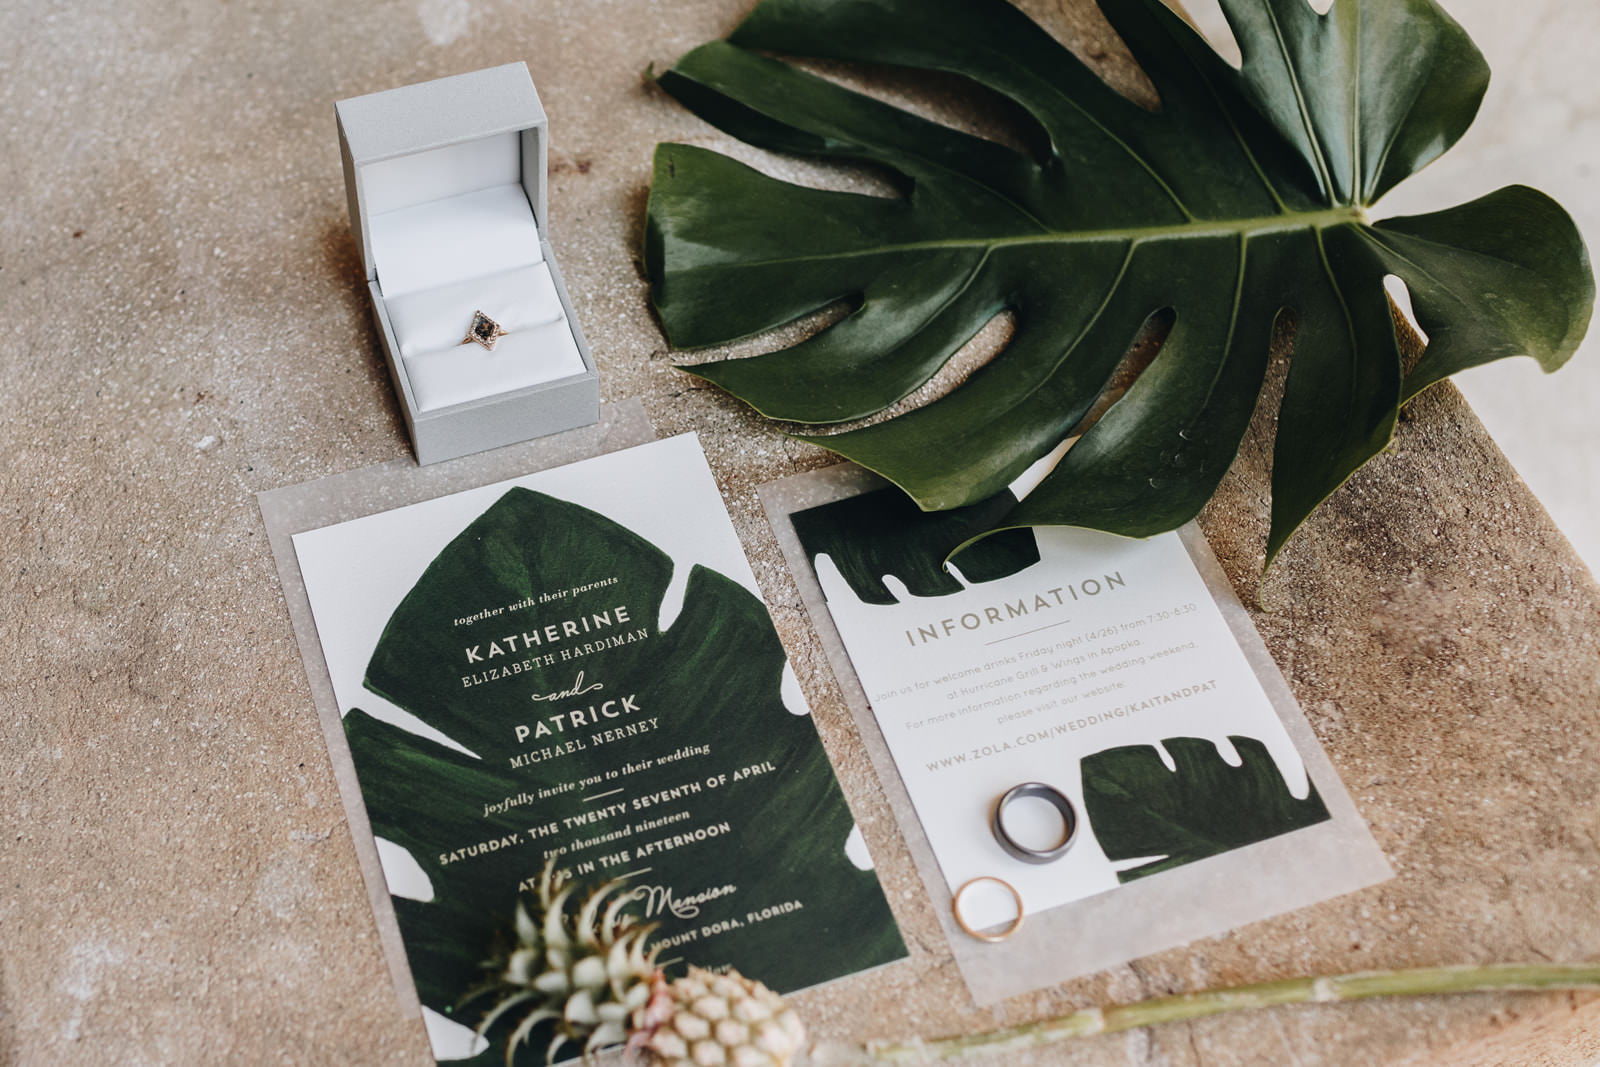 Tropical wedding invitations with wedding rings on top of them.